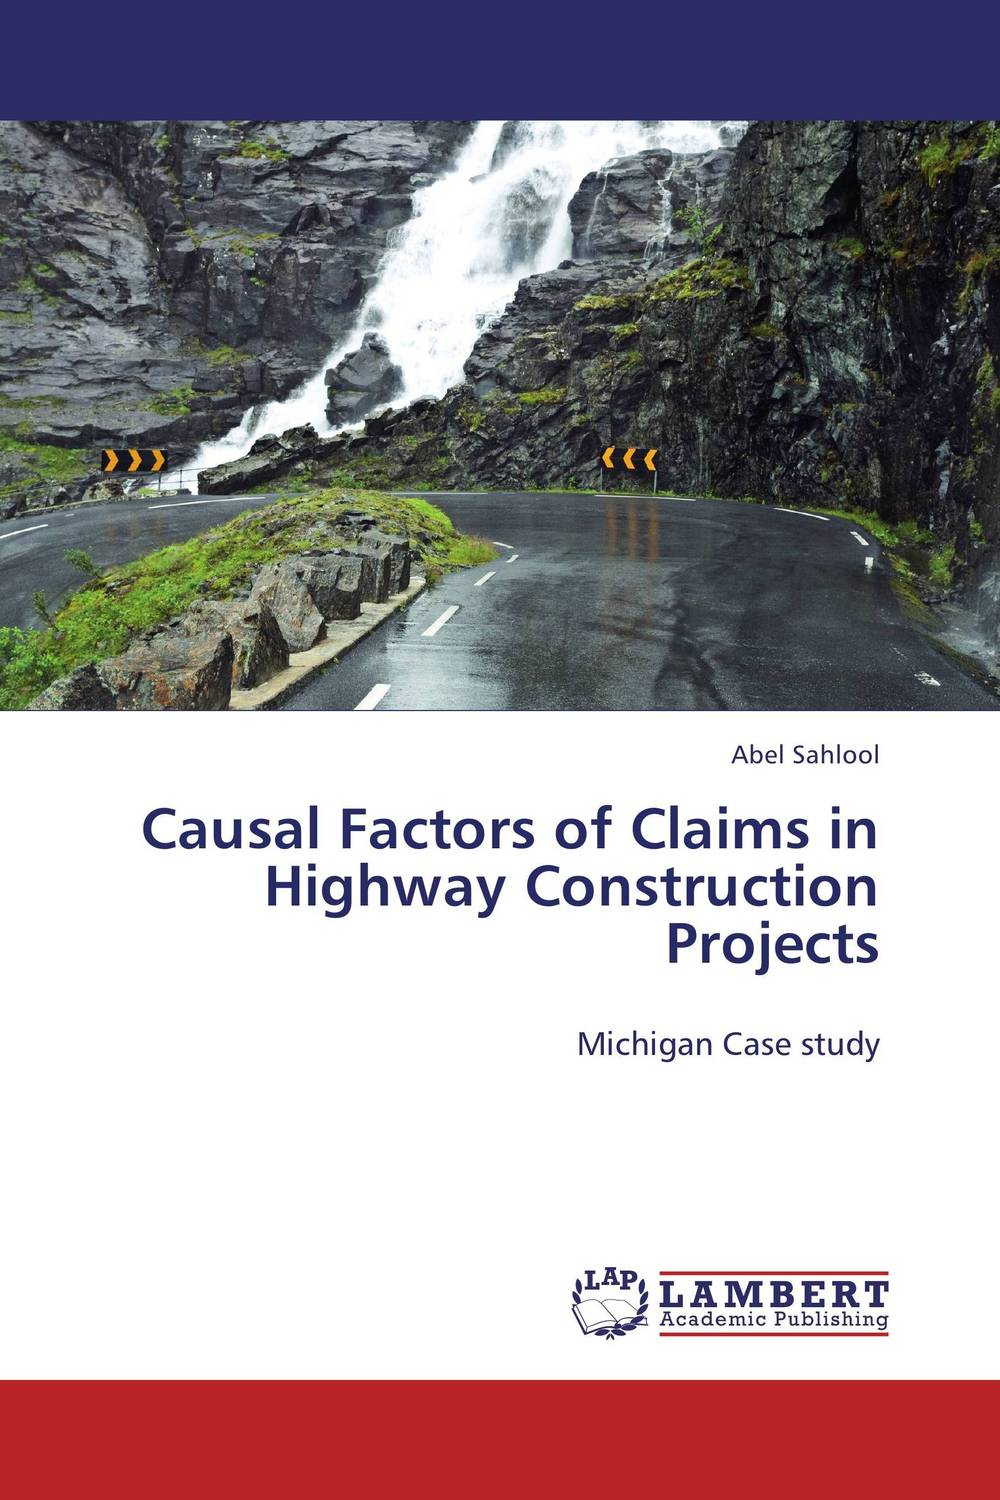 цена на Causal Factors of Claims in Highway Construction Projects